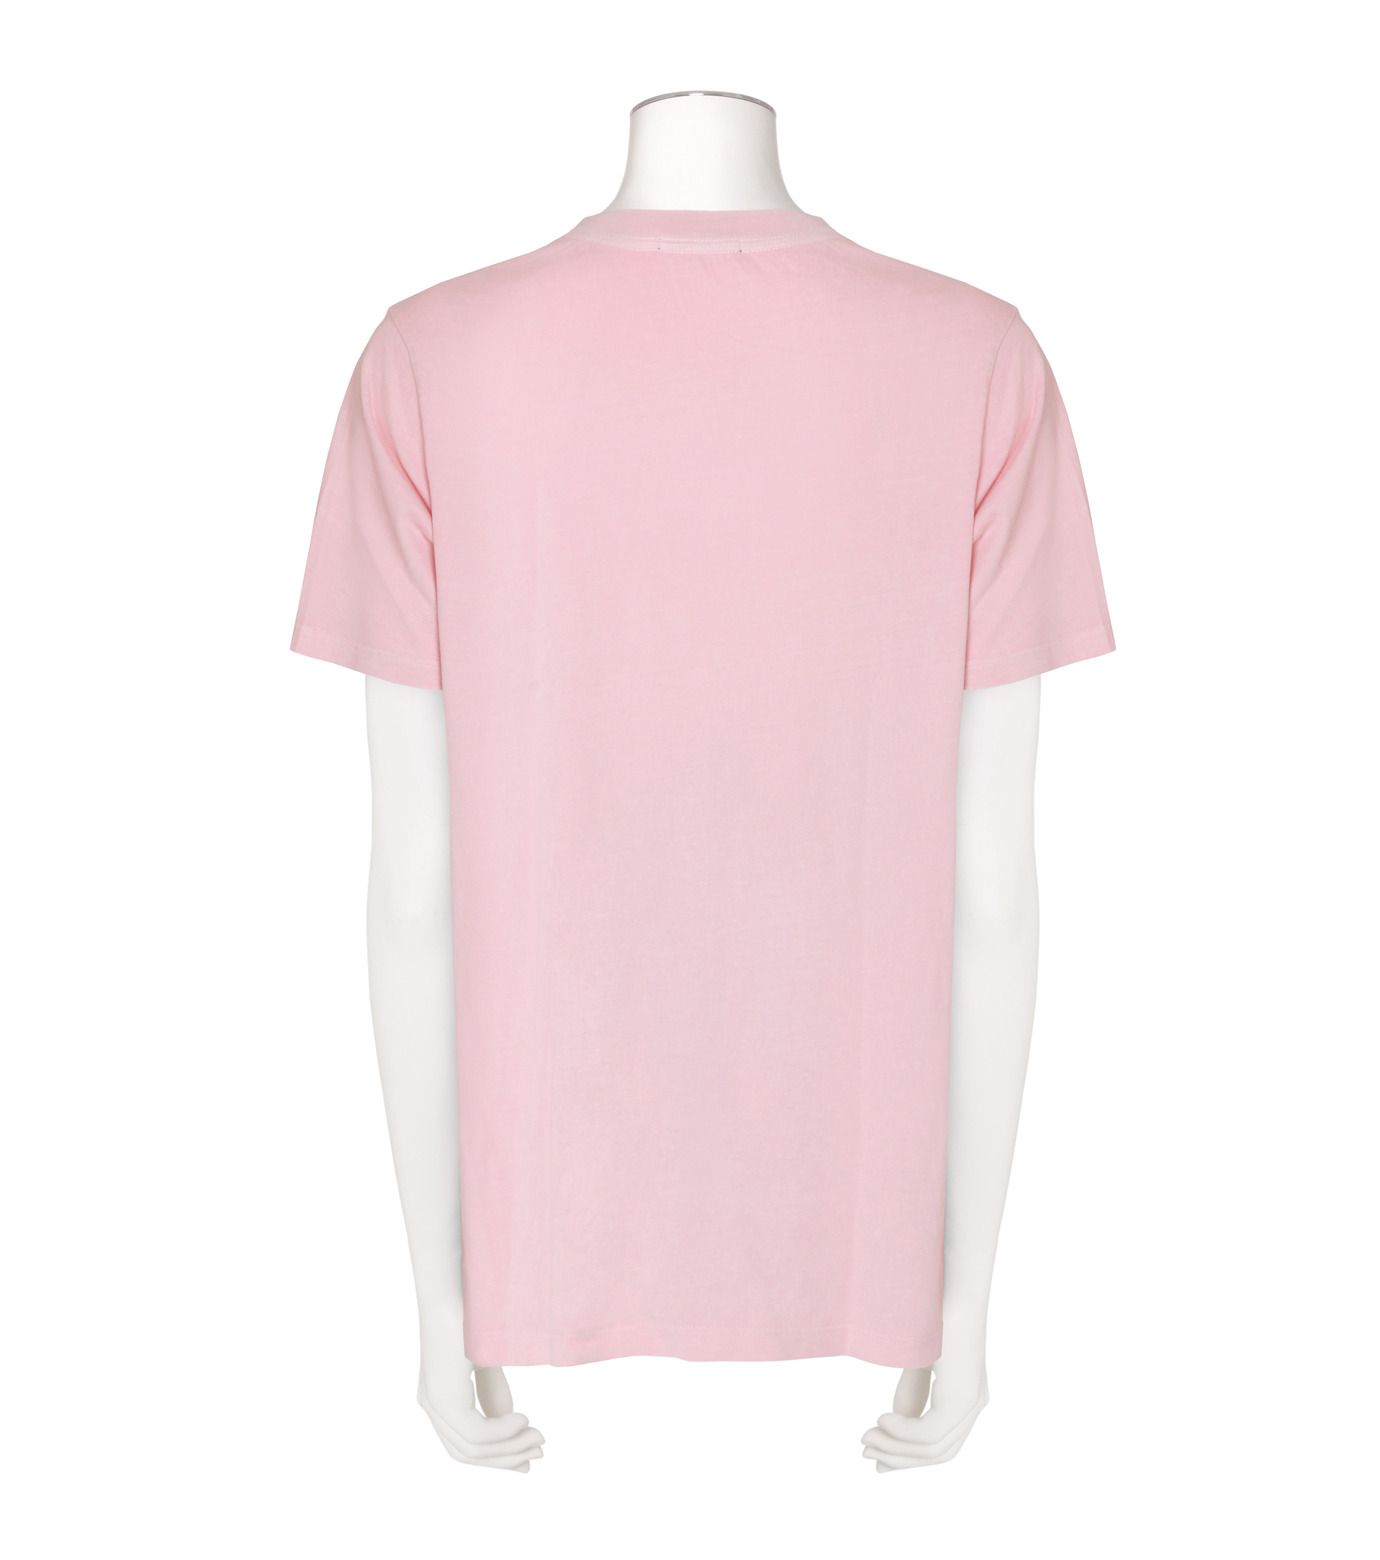 T by Alexander Wang(ティーバイ アレキサンダーワン)のCrew Neck T-PINK(カットソー/cut and sewn)-500211F16-72 拡大詳細画像2